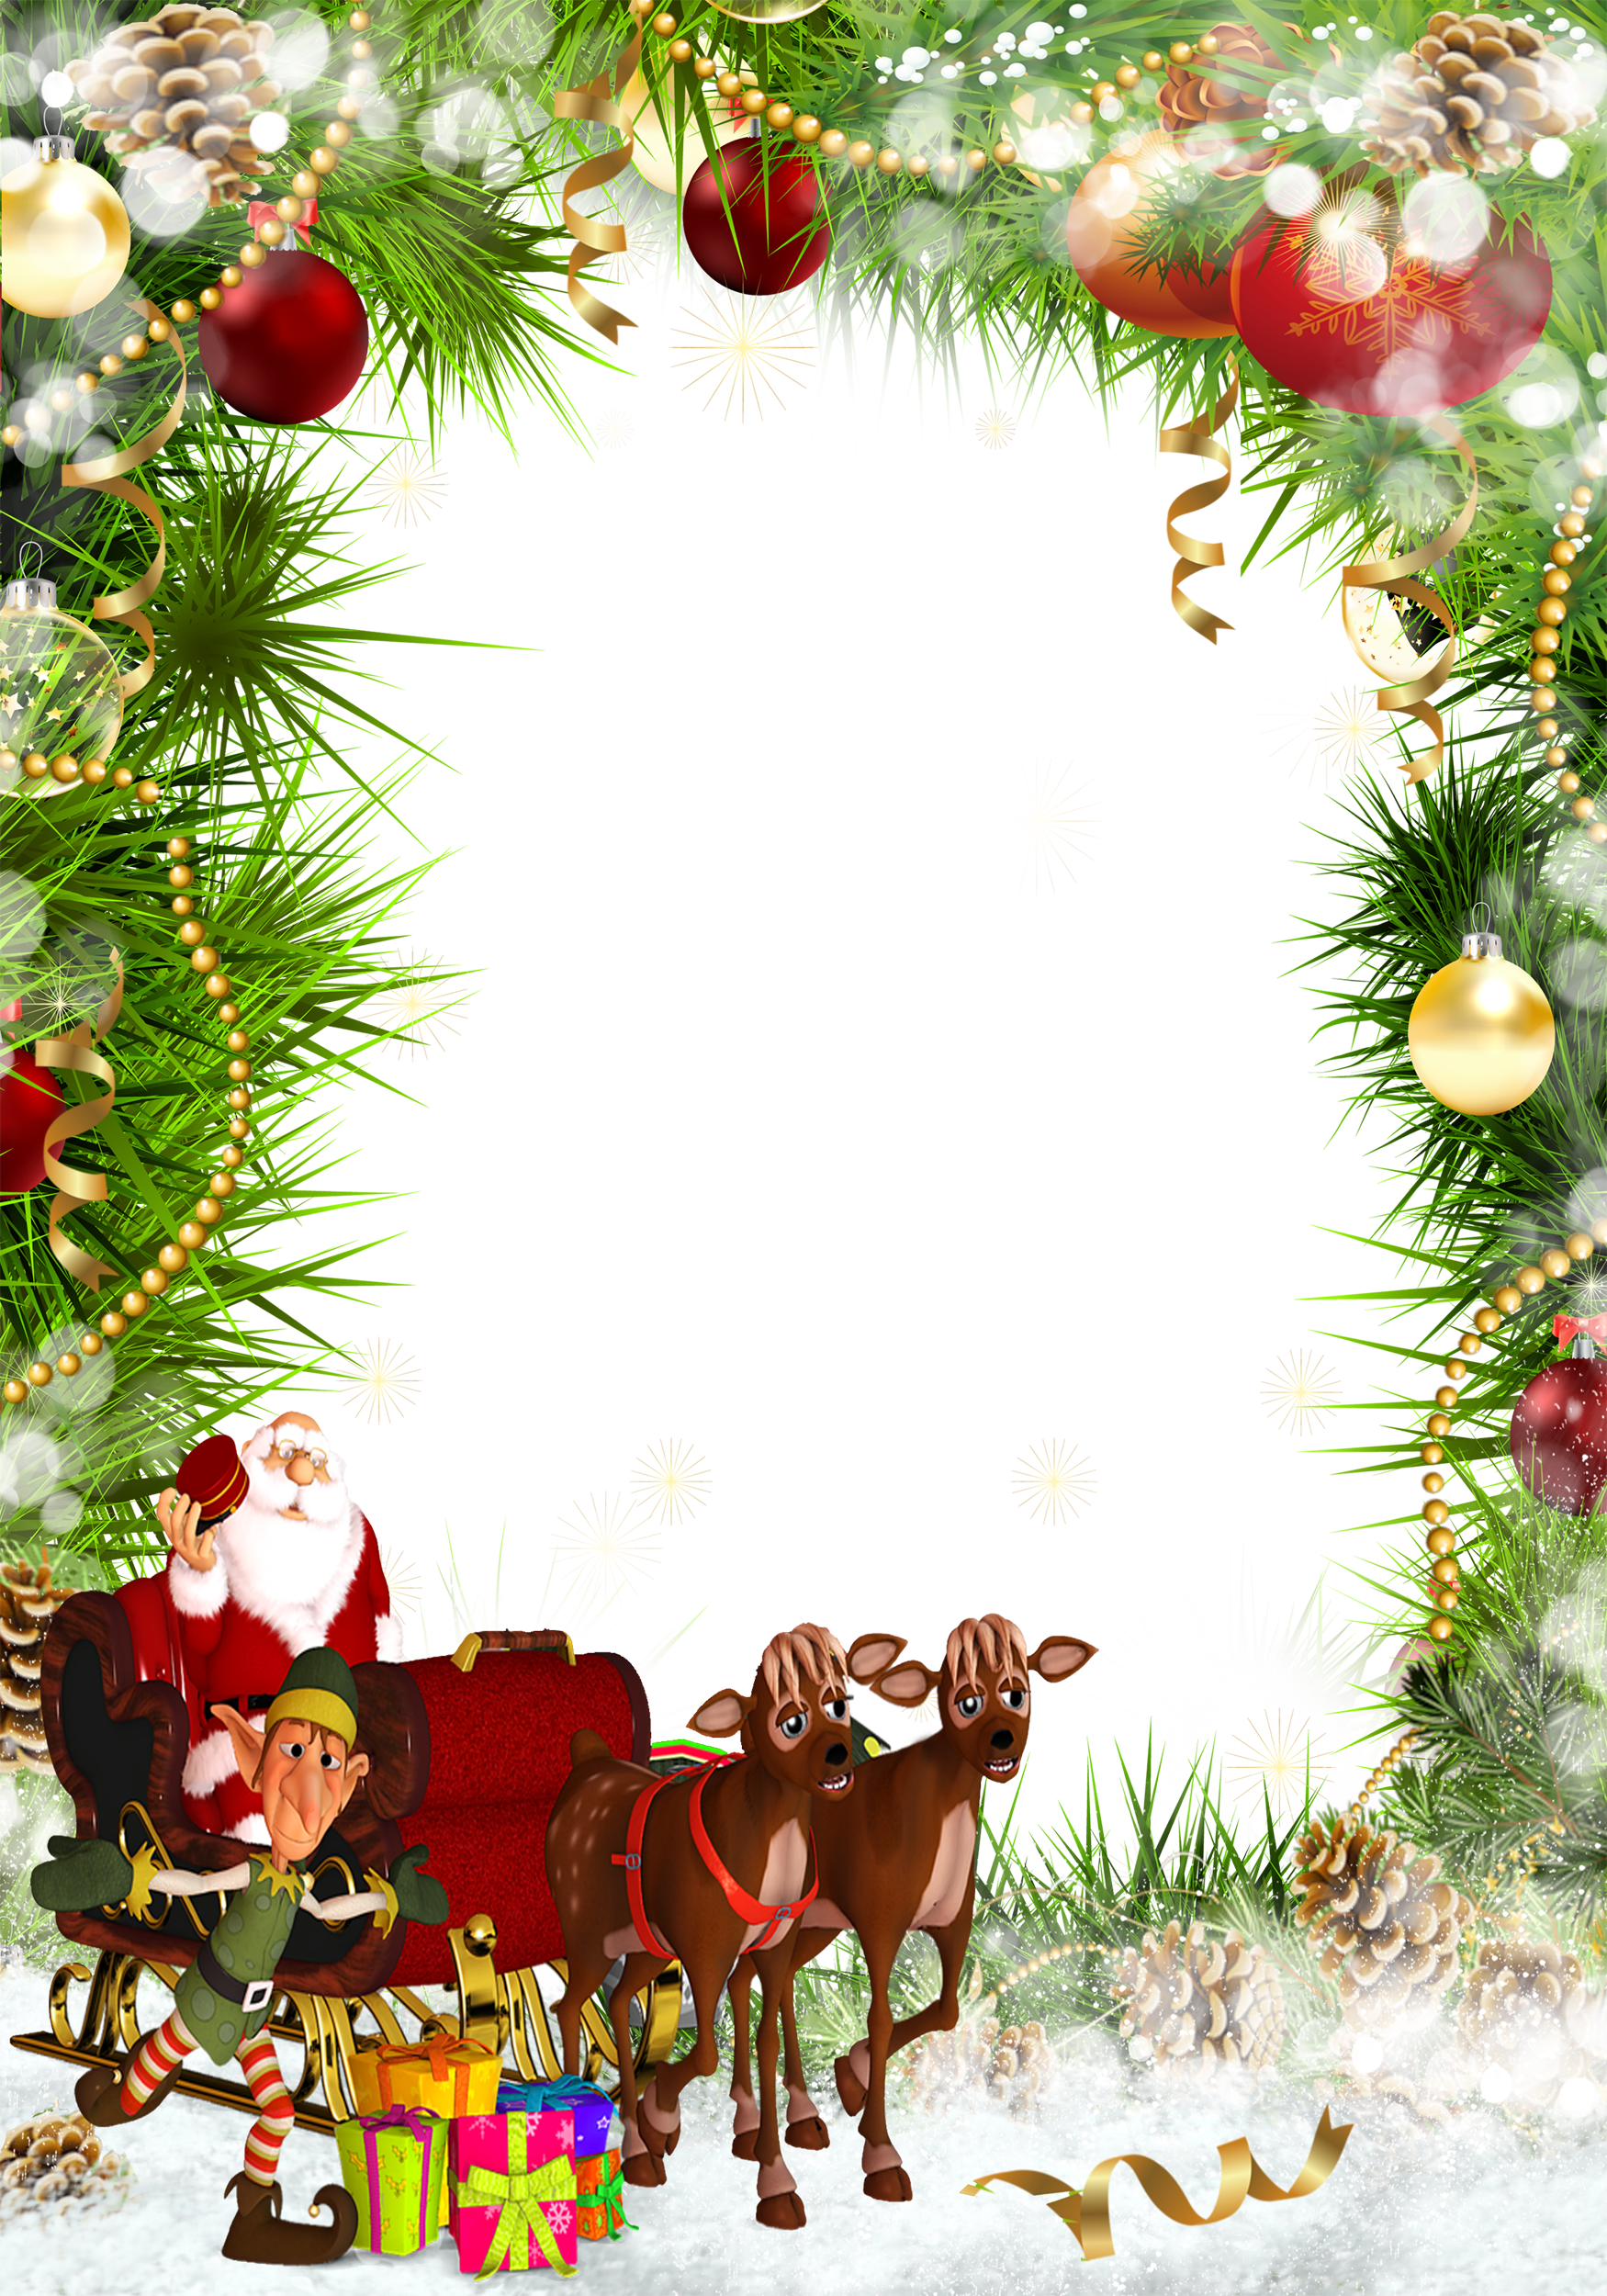 Christmas frame clipart svg royalty free Christmas frames clipart free dowload svg royalty free